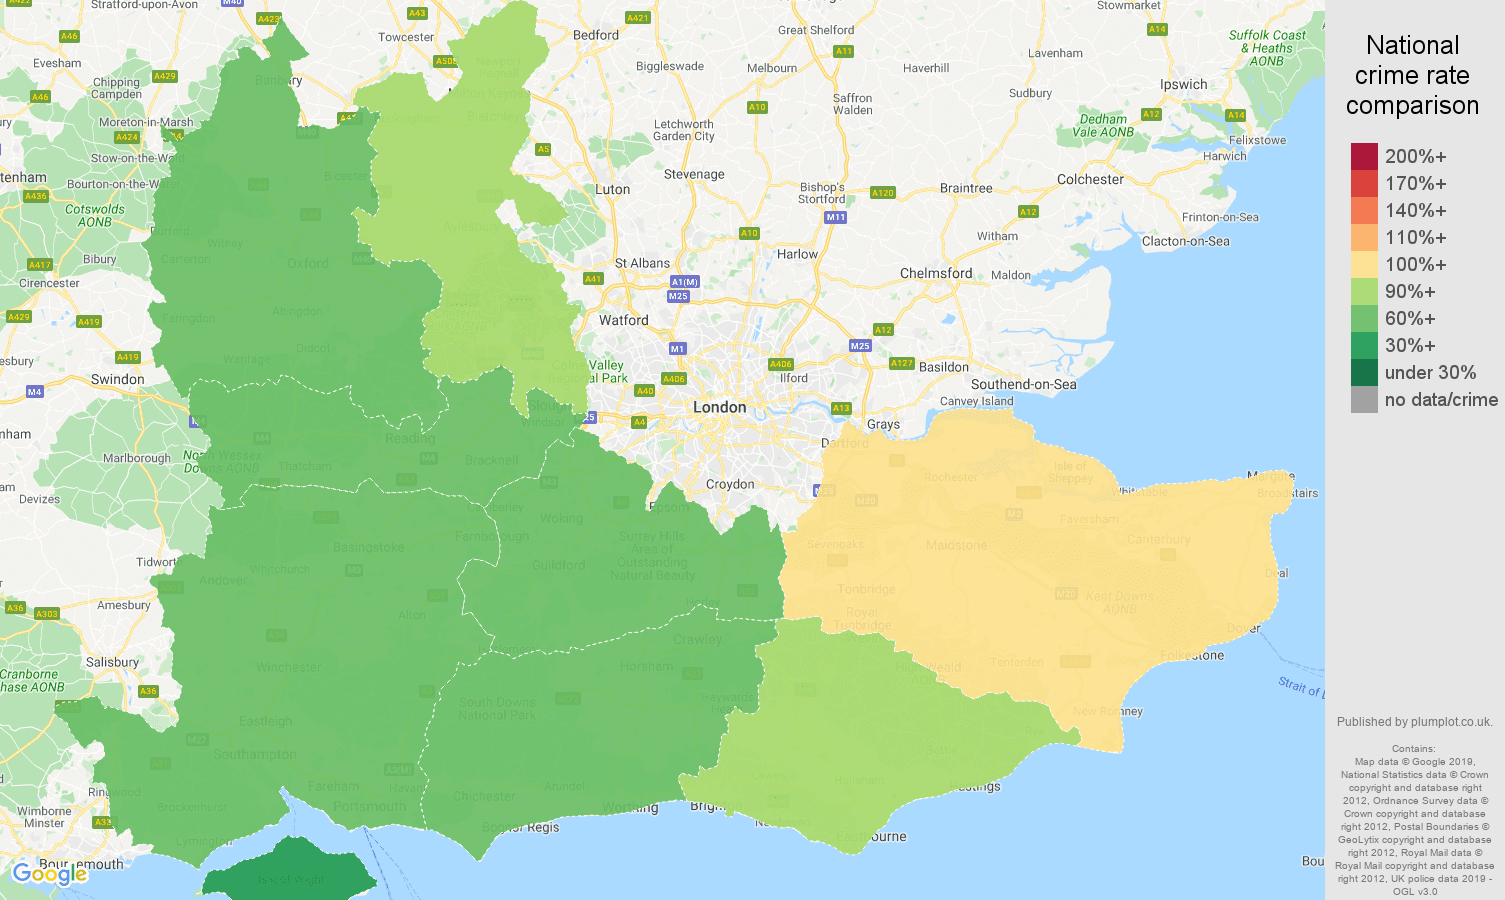 South East other theft crime rate comparison map